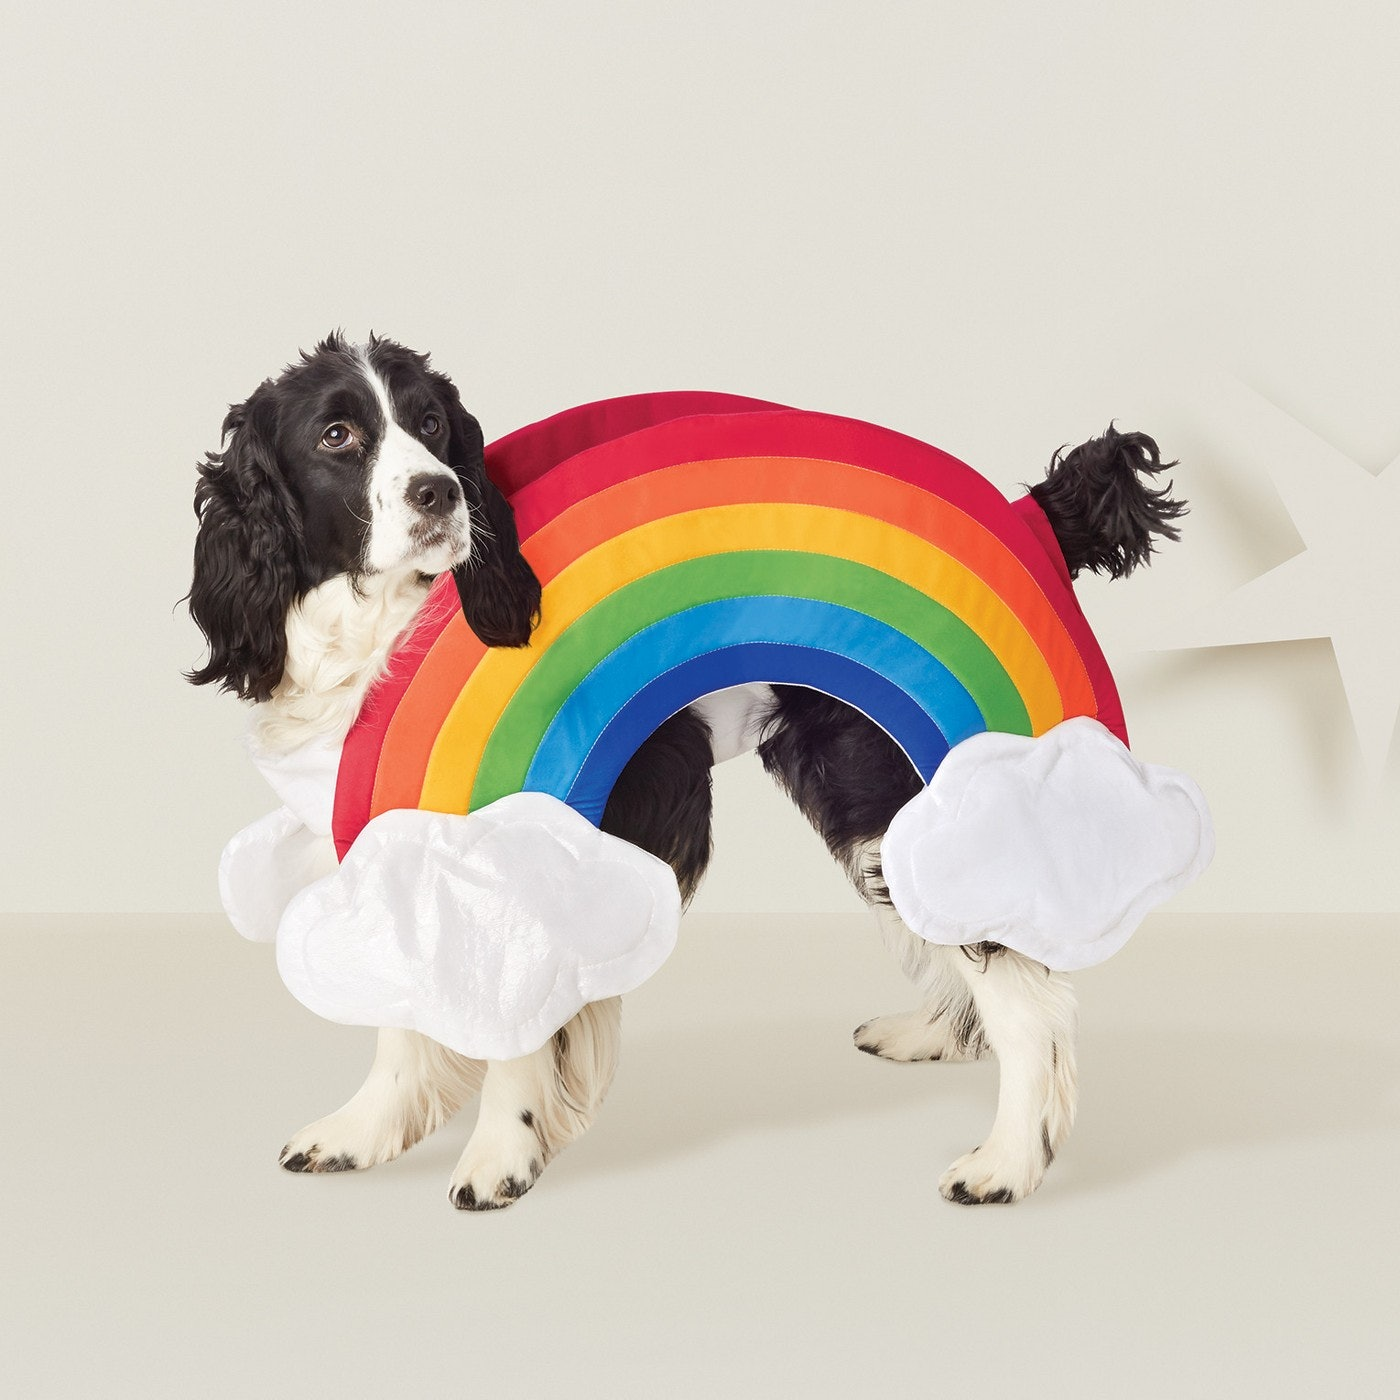 15 Matching Dog & Owner Halloween 2018 Costumes That Are Just ...